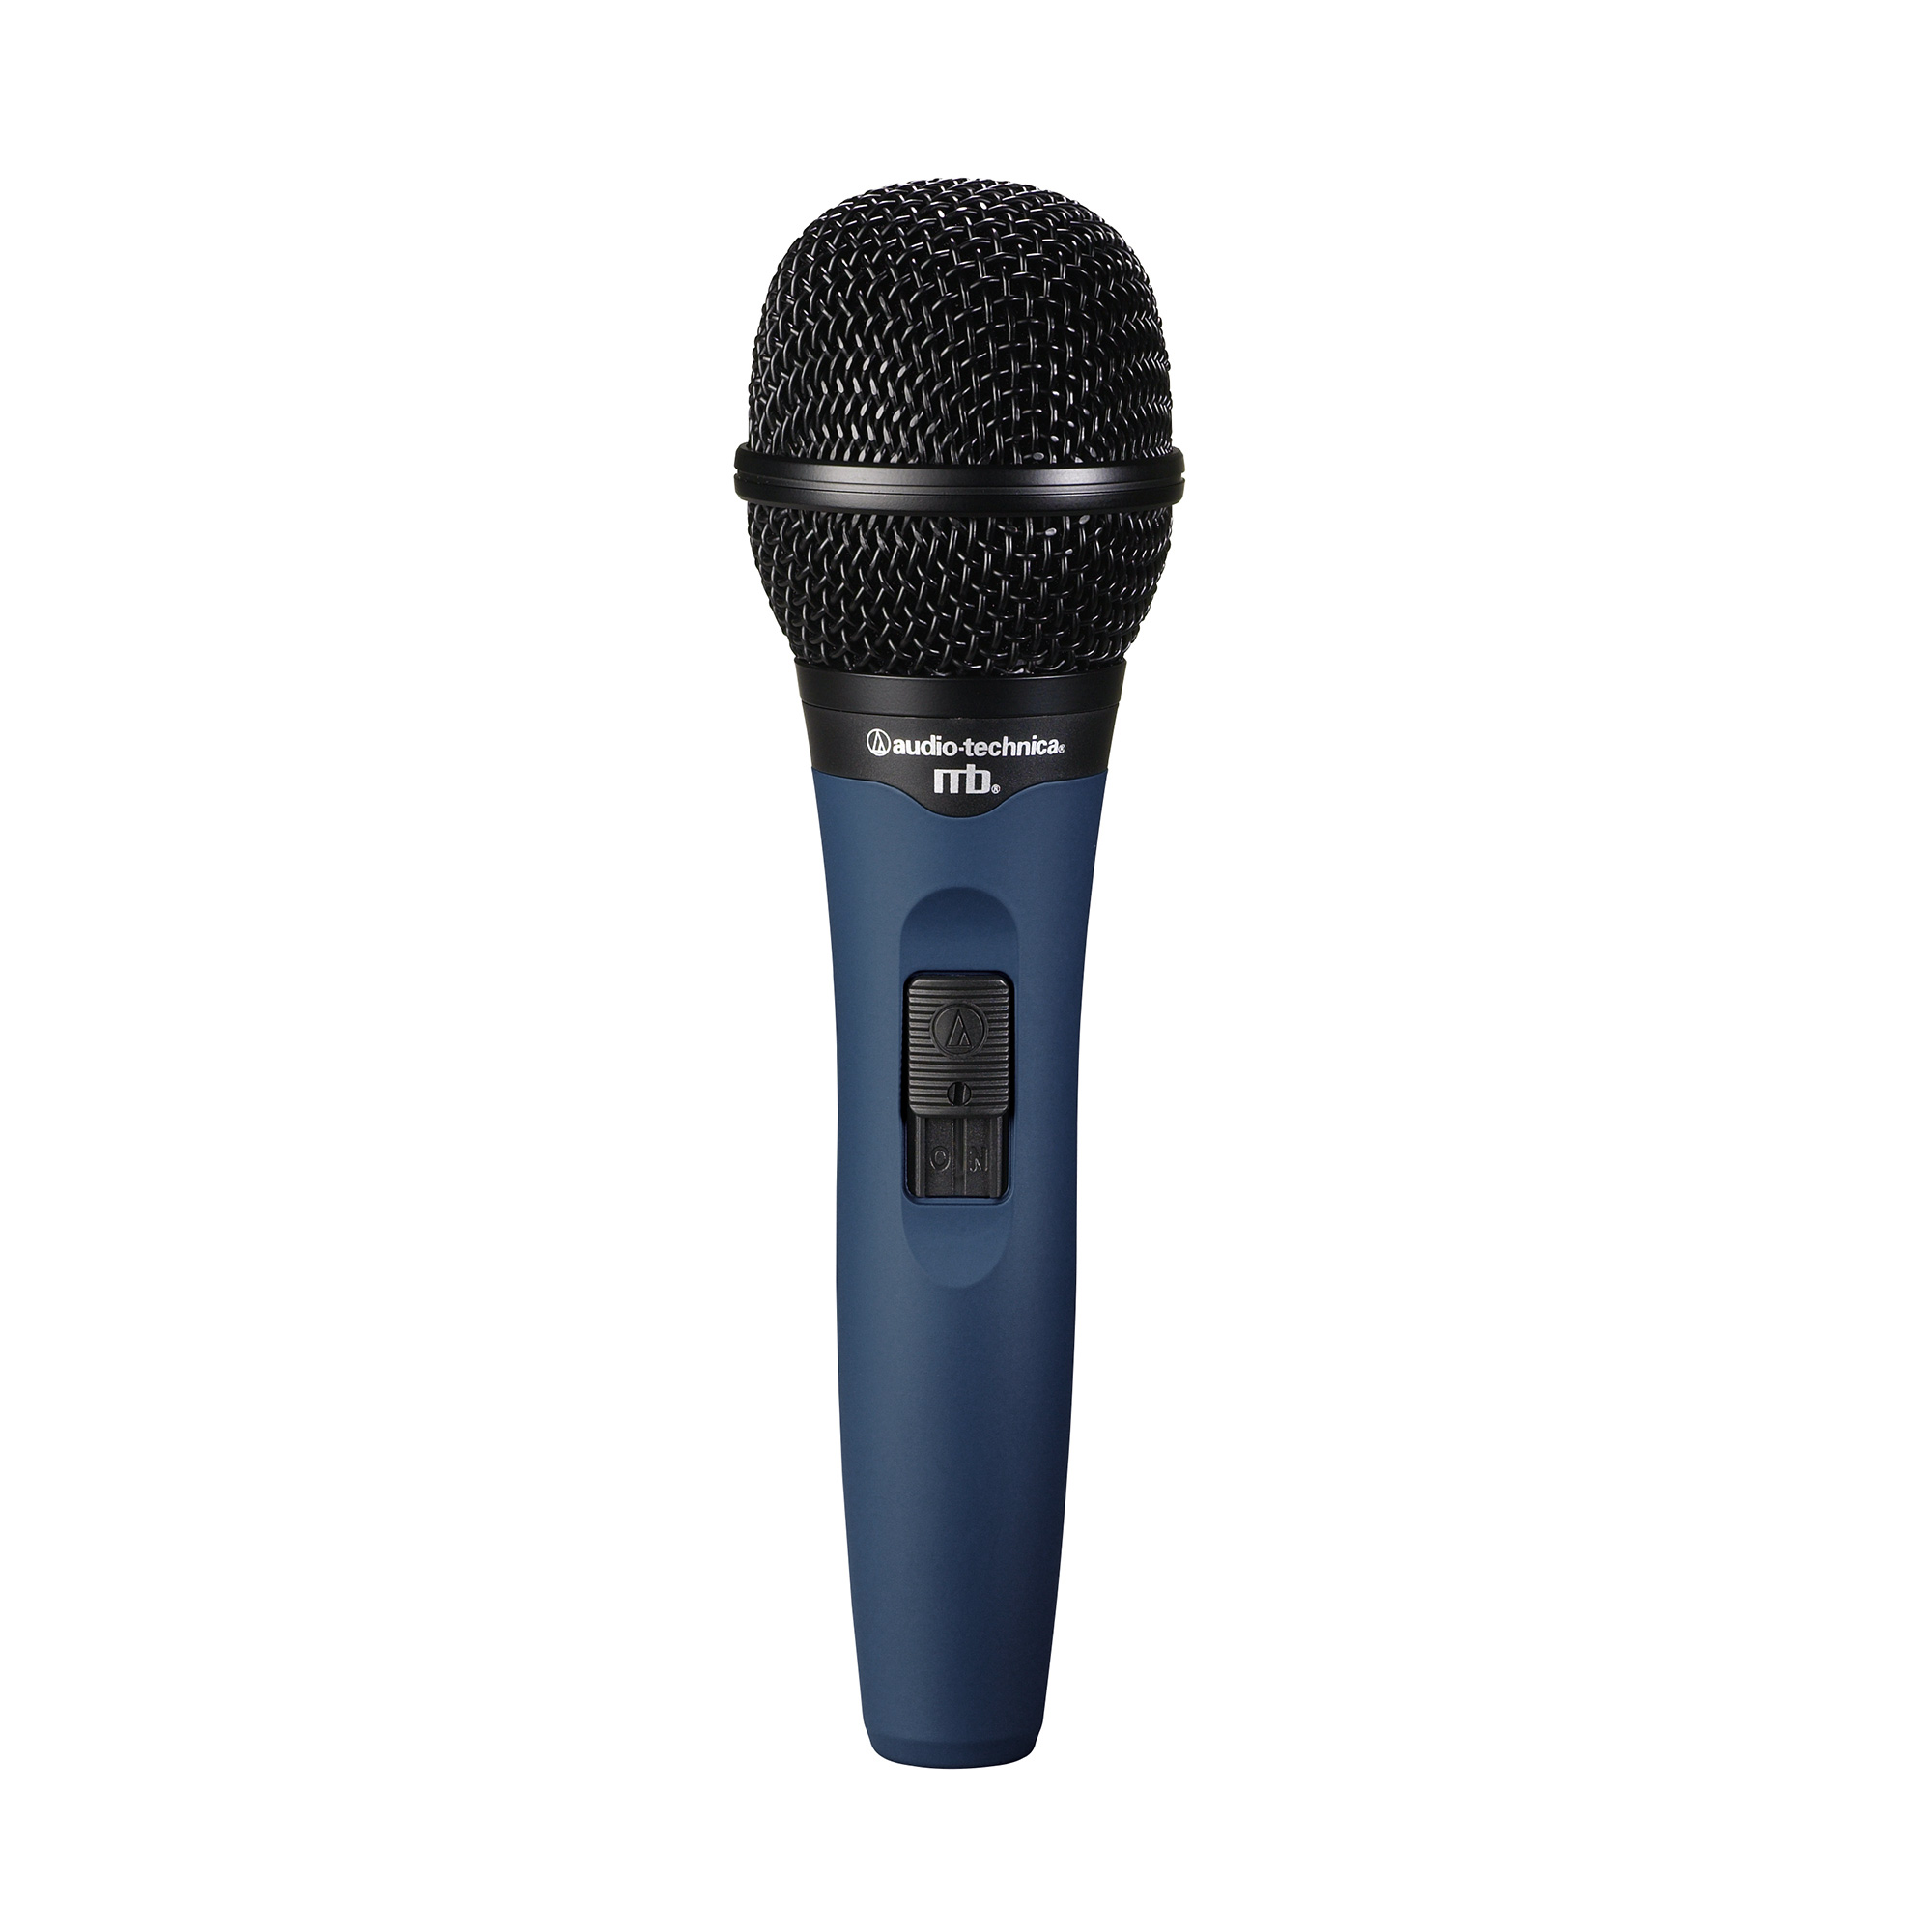 audio technica mb3k c handheld hypercardioid dynamic vocal microphone with cable. Black Bedroom Furniture Sets. Home Design Ideas